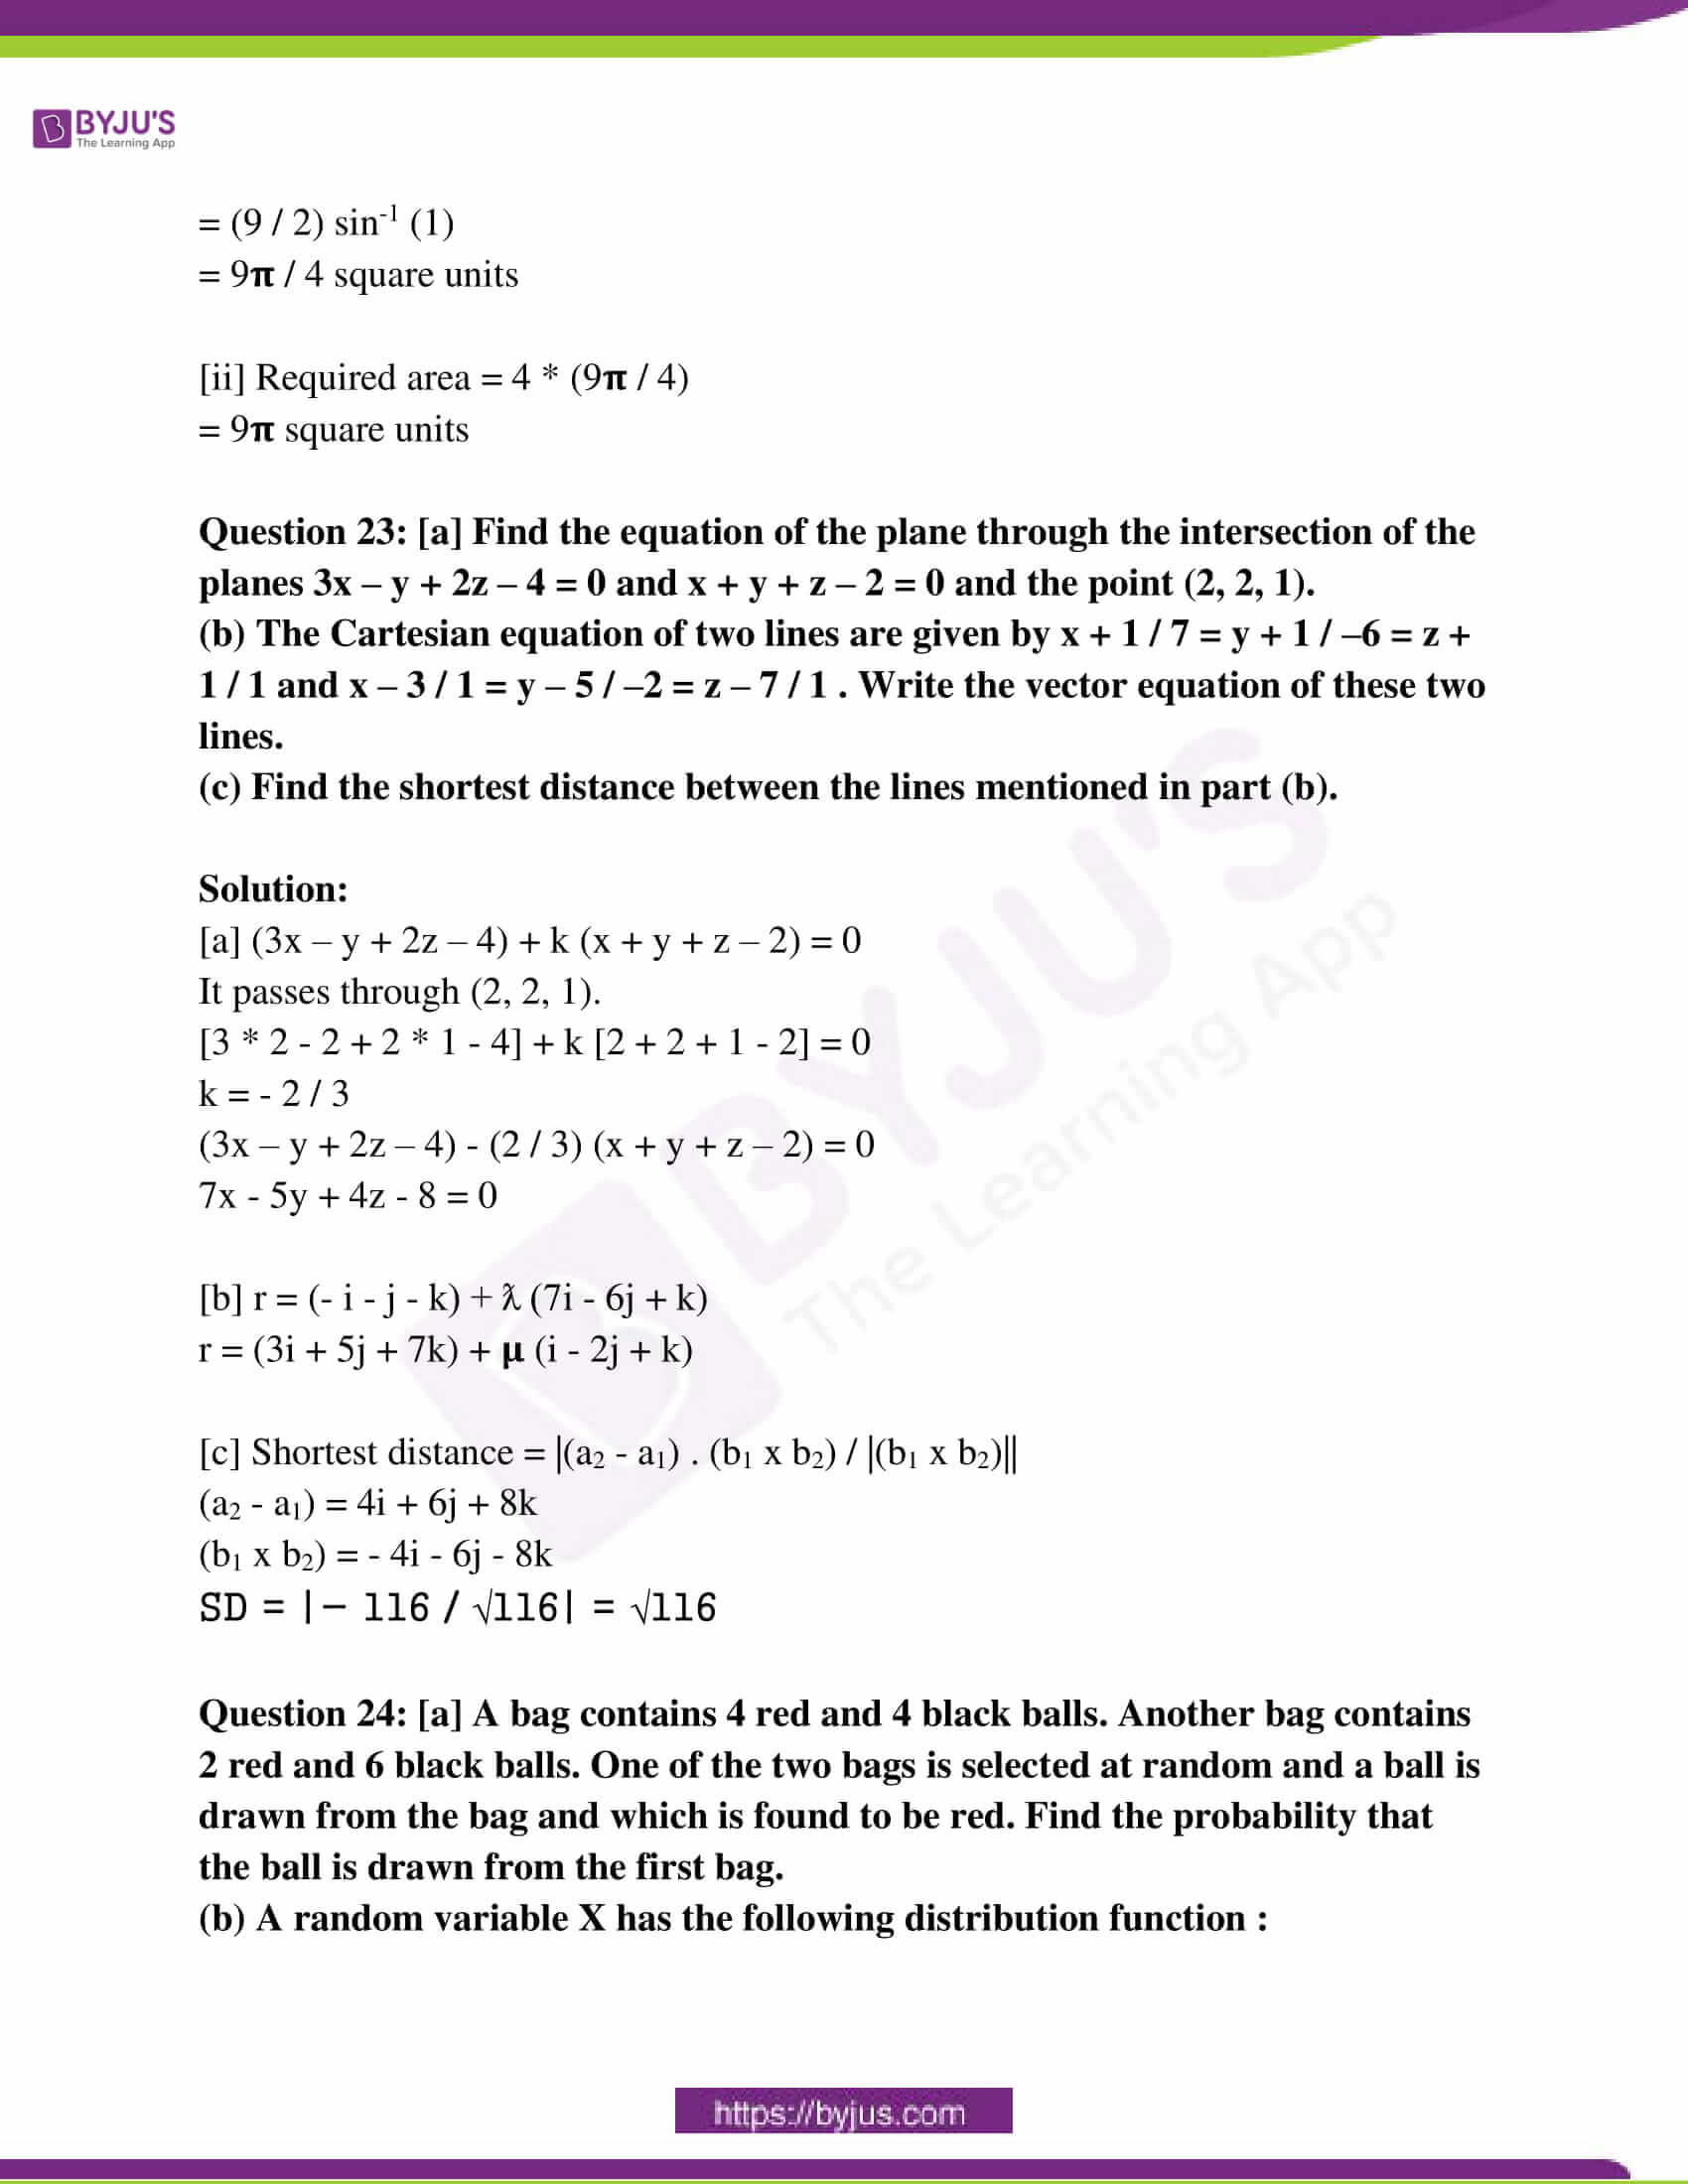 kerala class 12 examination question paper solutions march 2019 19